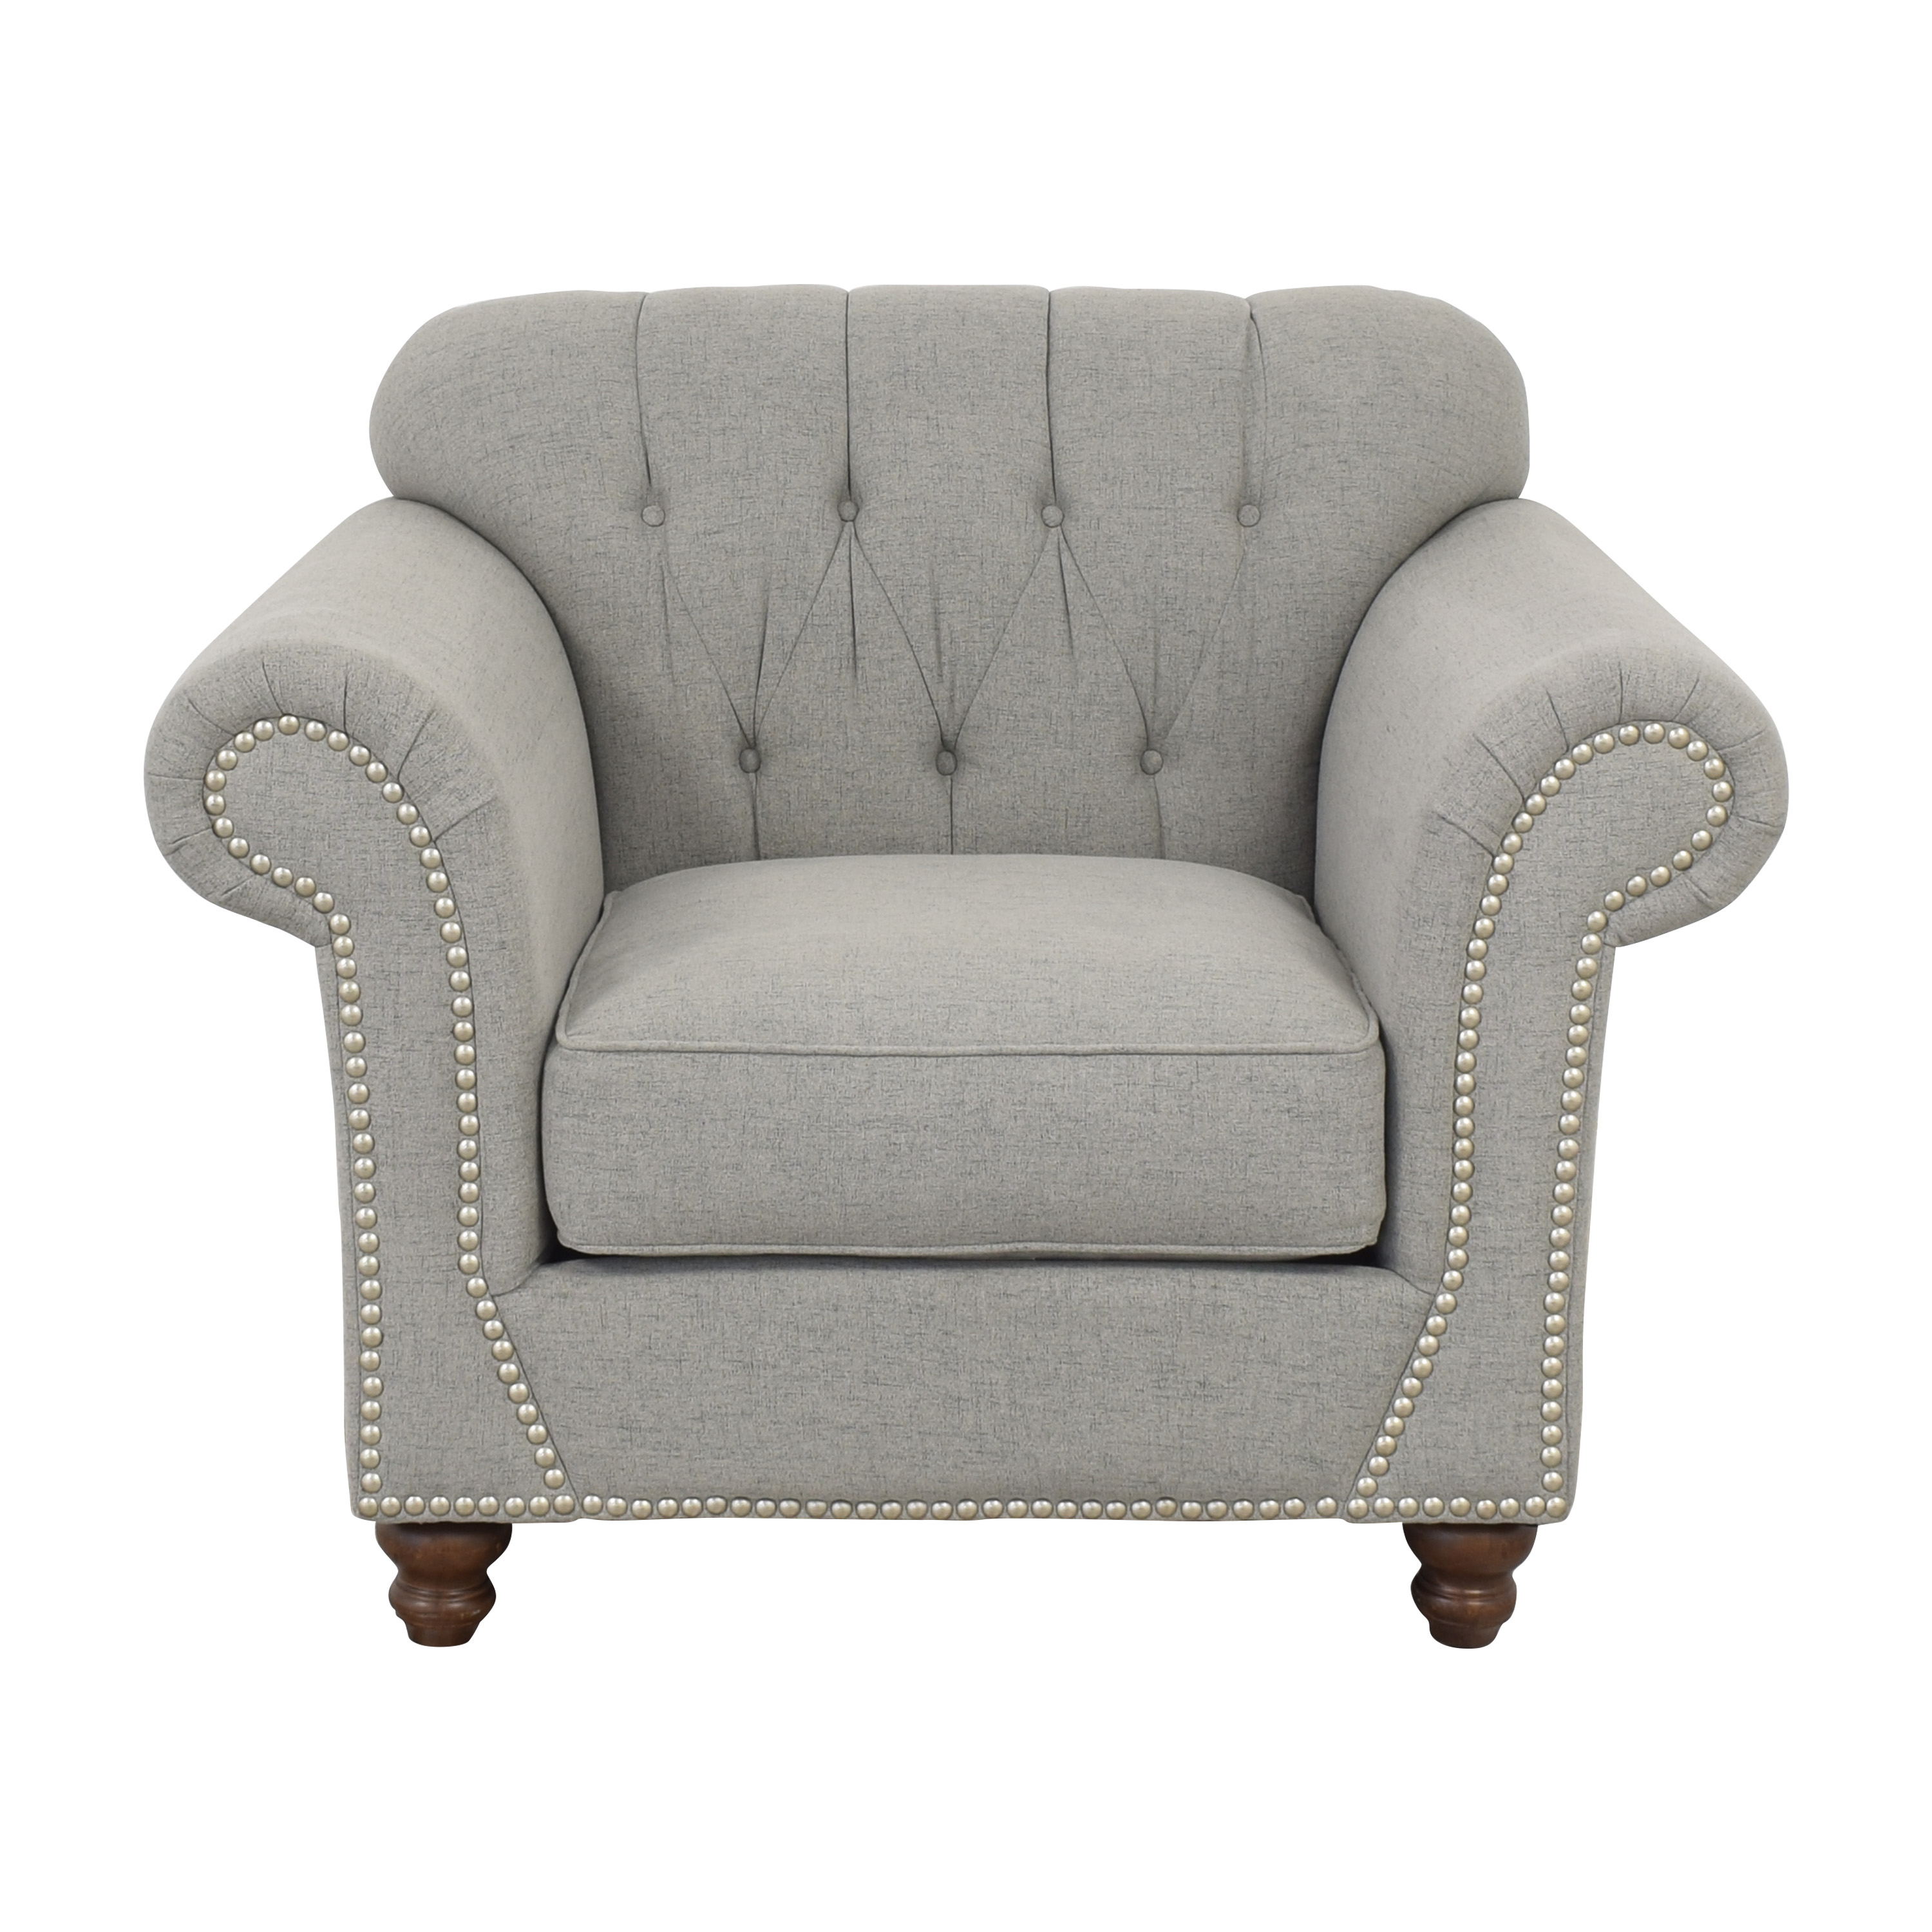 buy Klaussner Distinctions Nailhead Accent Chair Klaussner